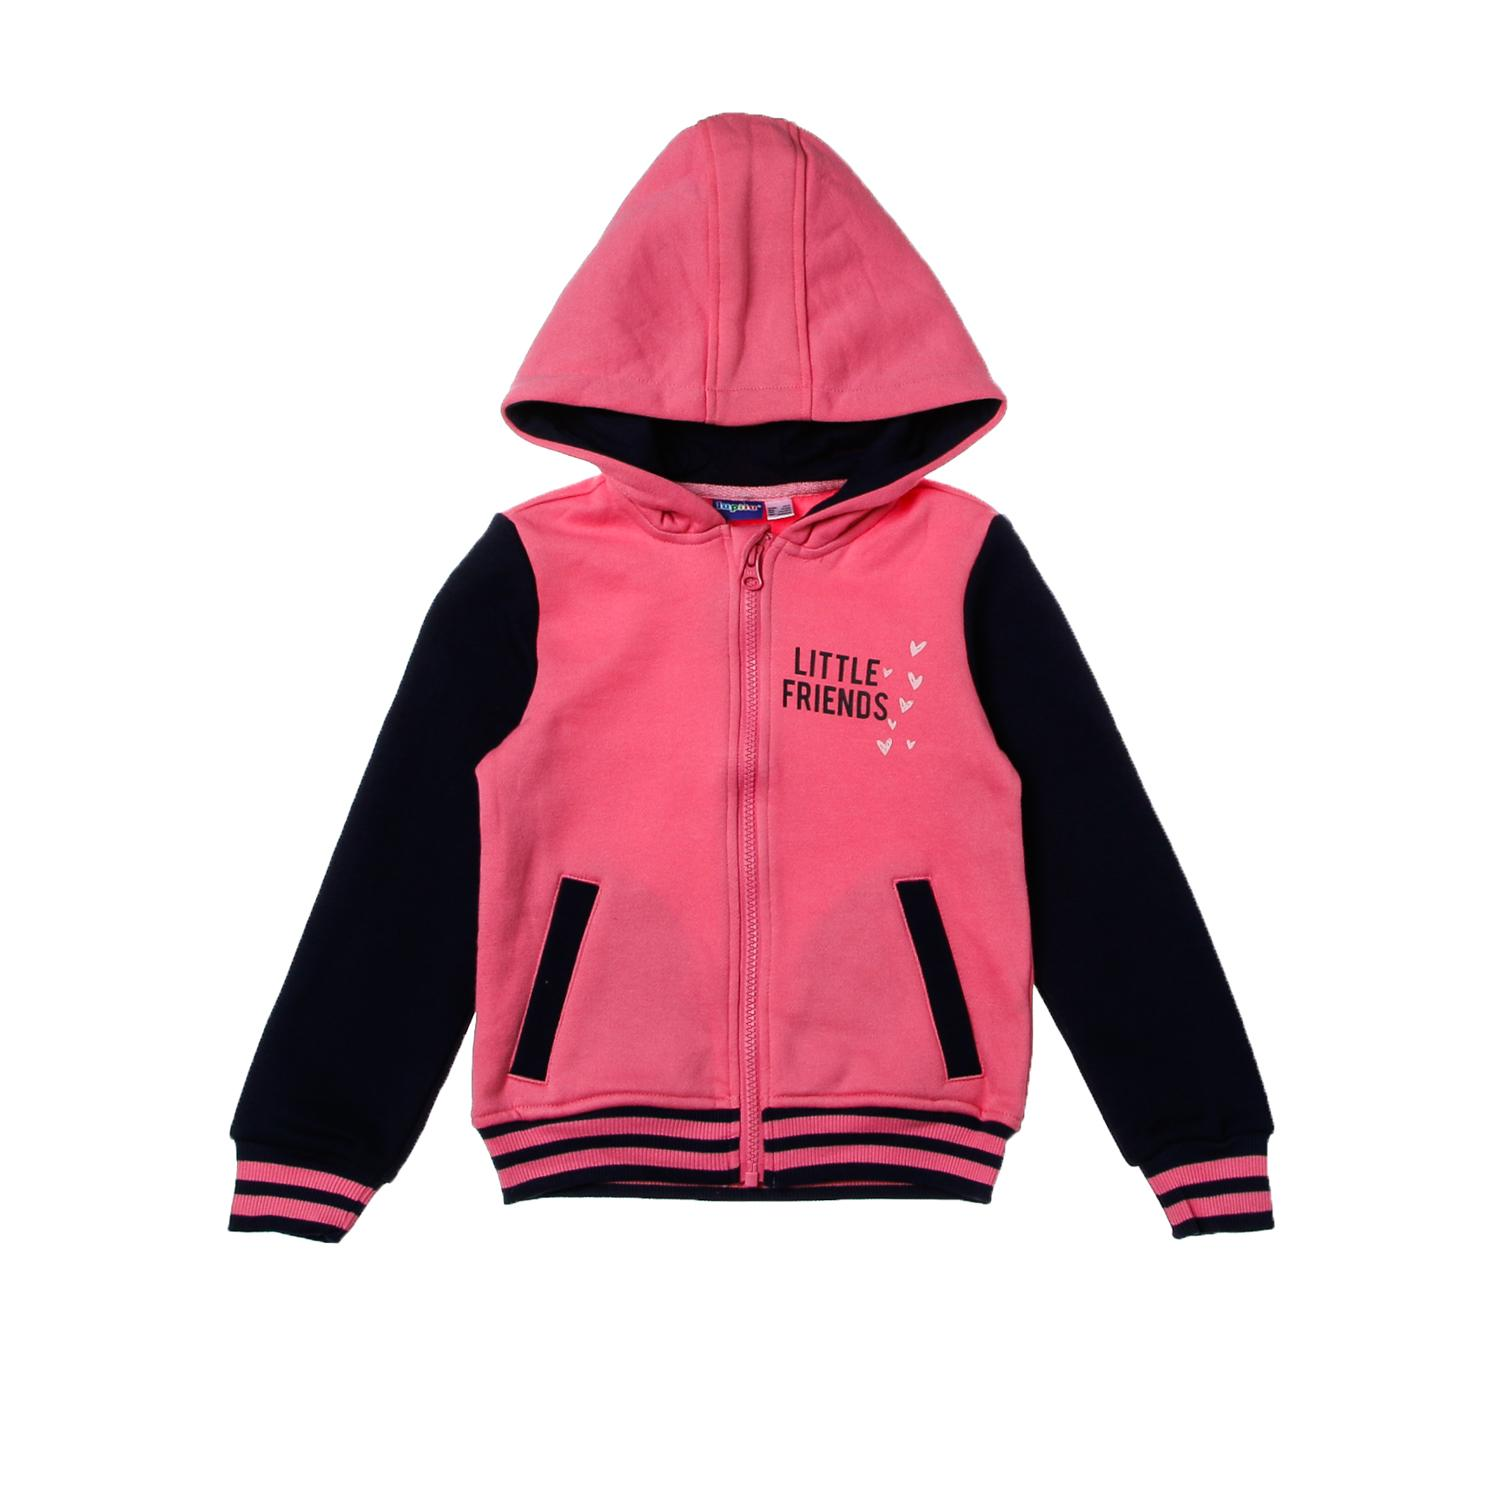 9b464f619d38 Girls Jackets for sale - Girls Baby Coats online brands